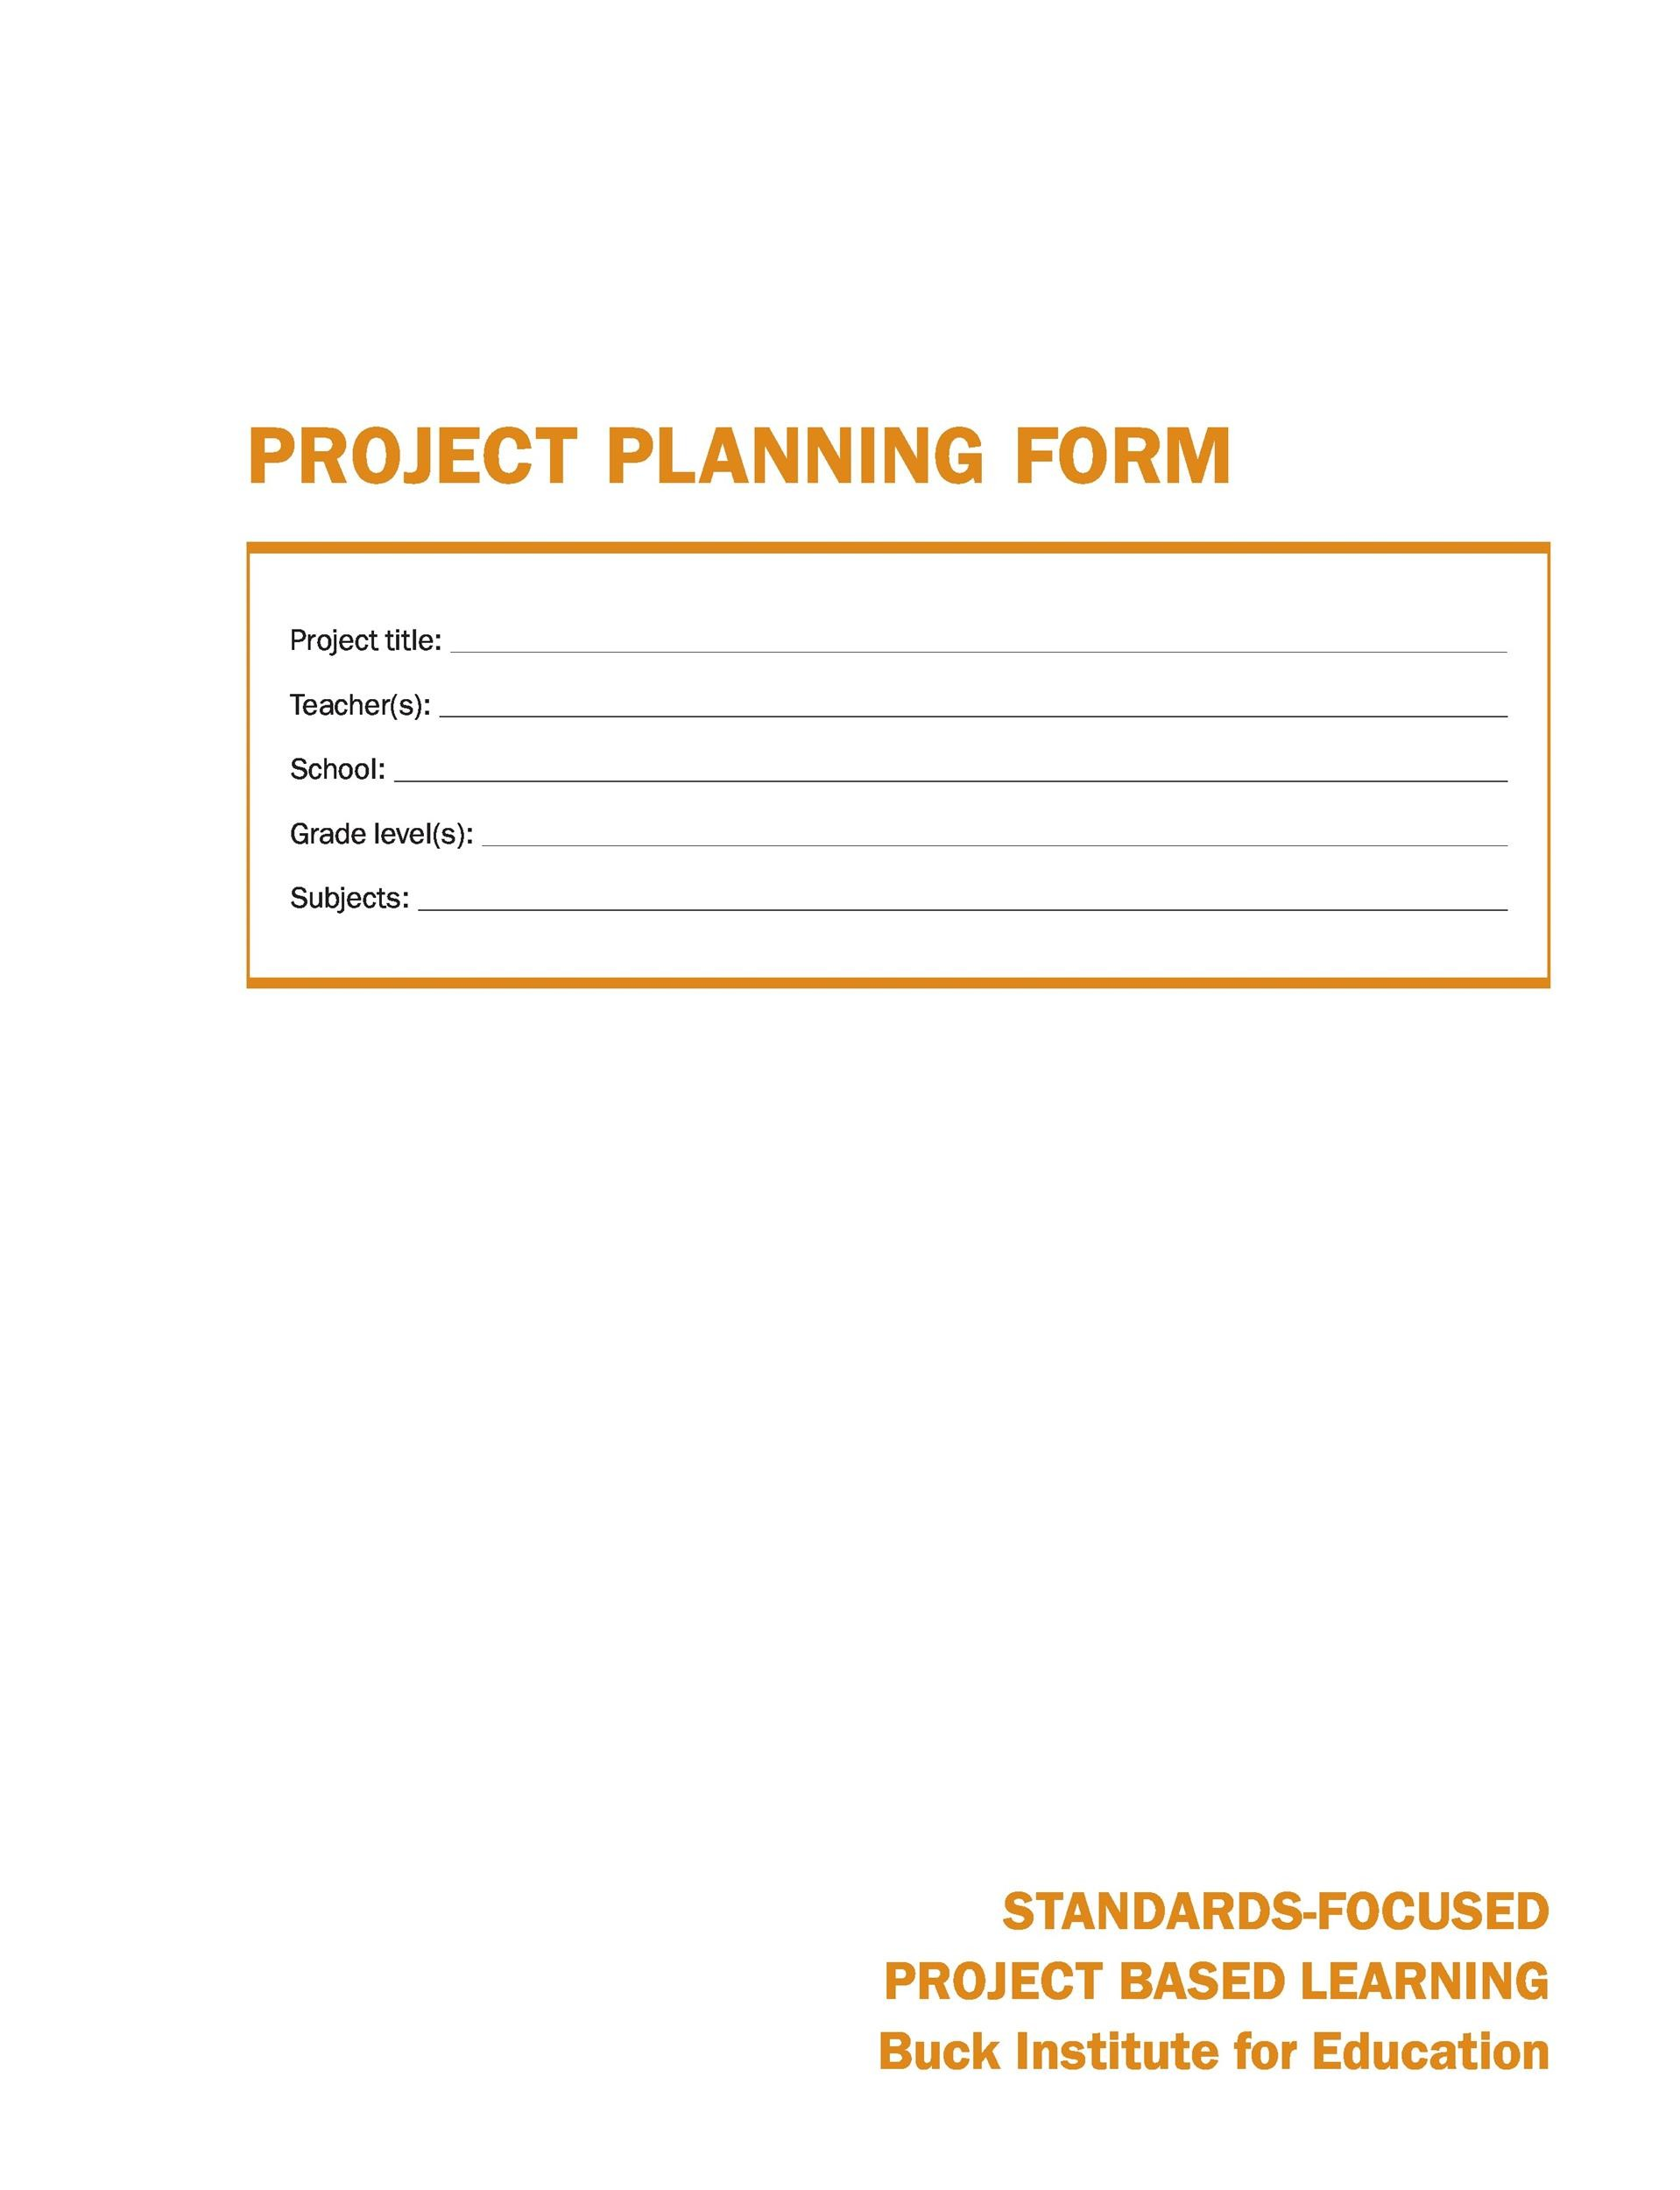 projectplan pdf 48 Professional Project Plan Templates [Excel, Word, PDF] ᐅ